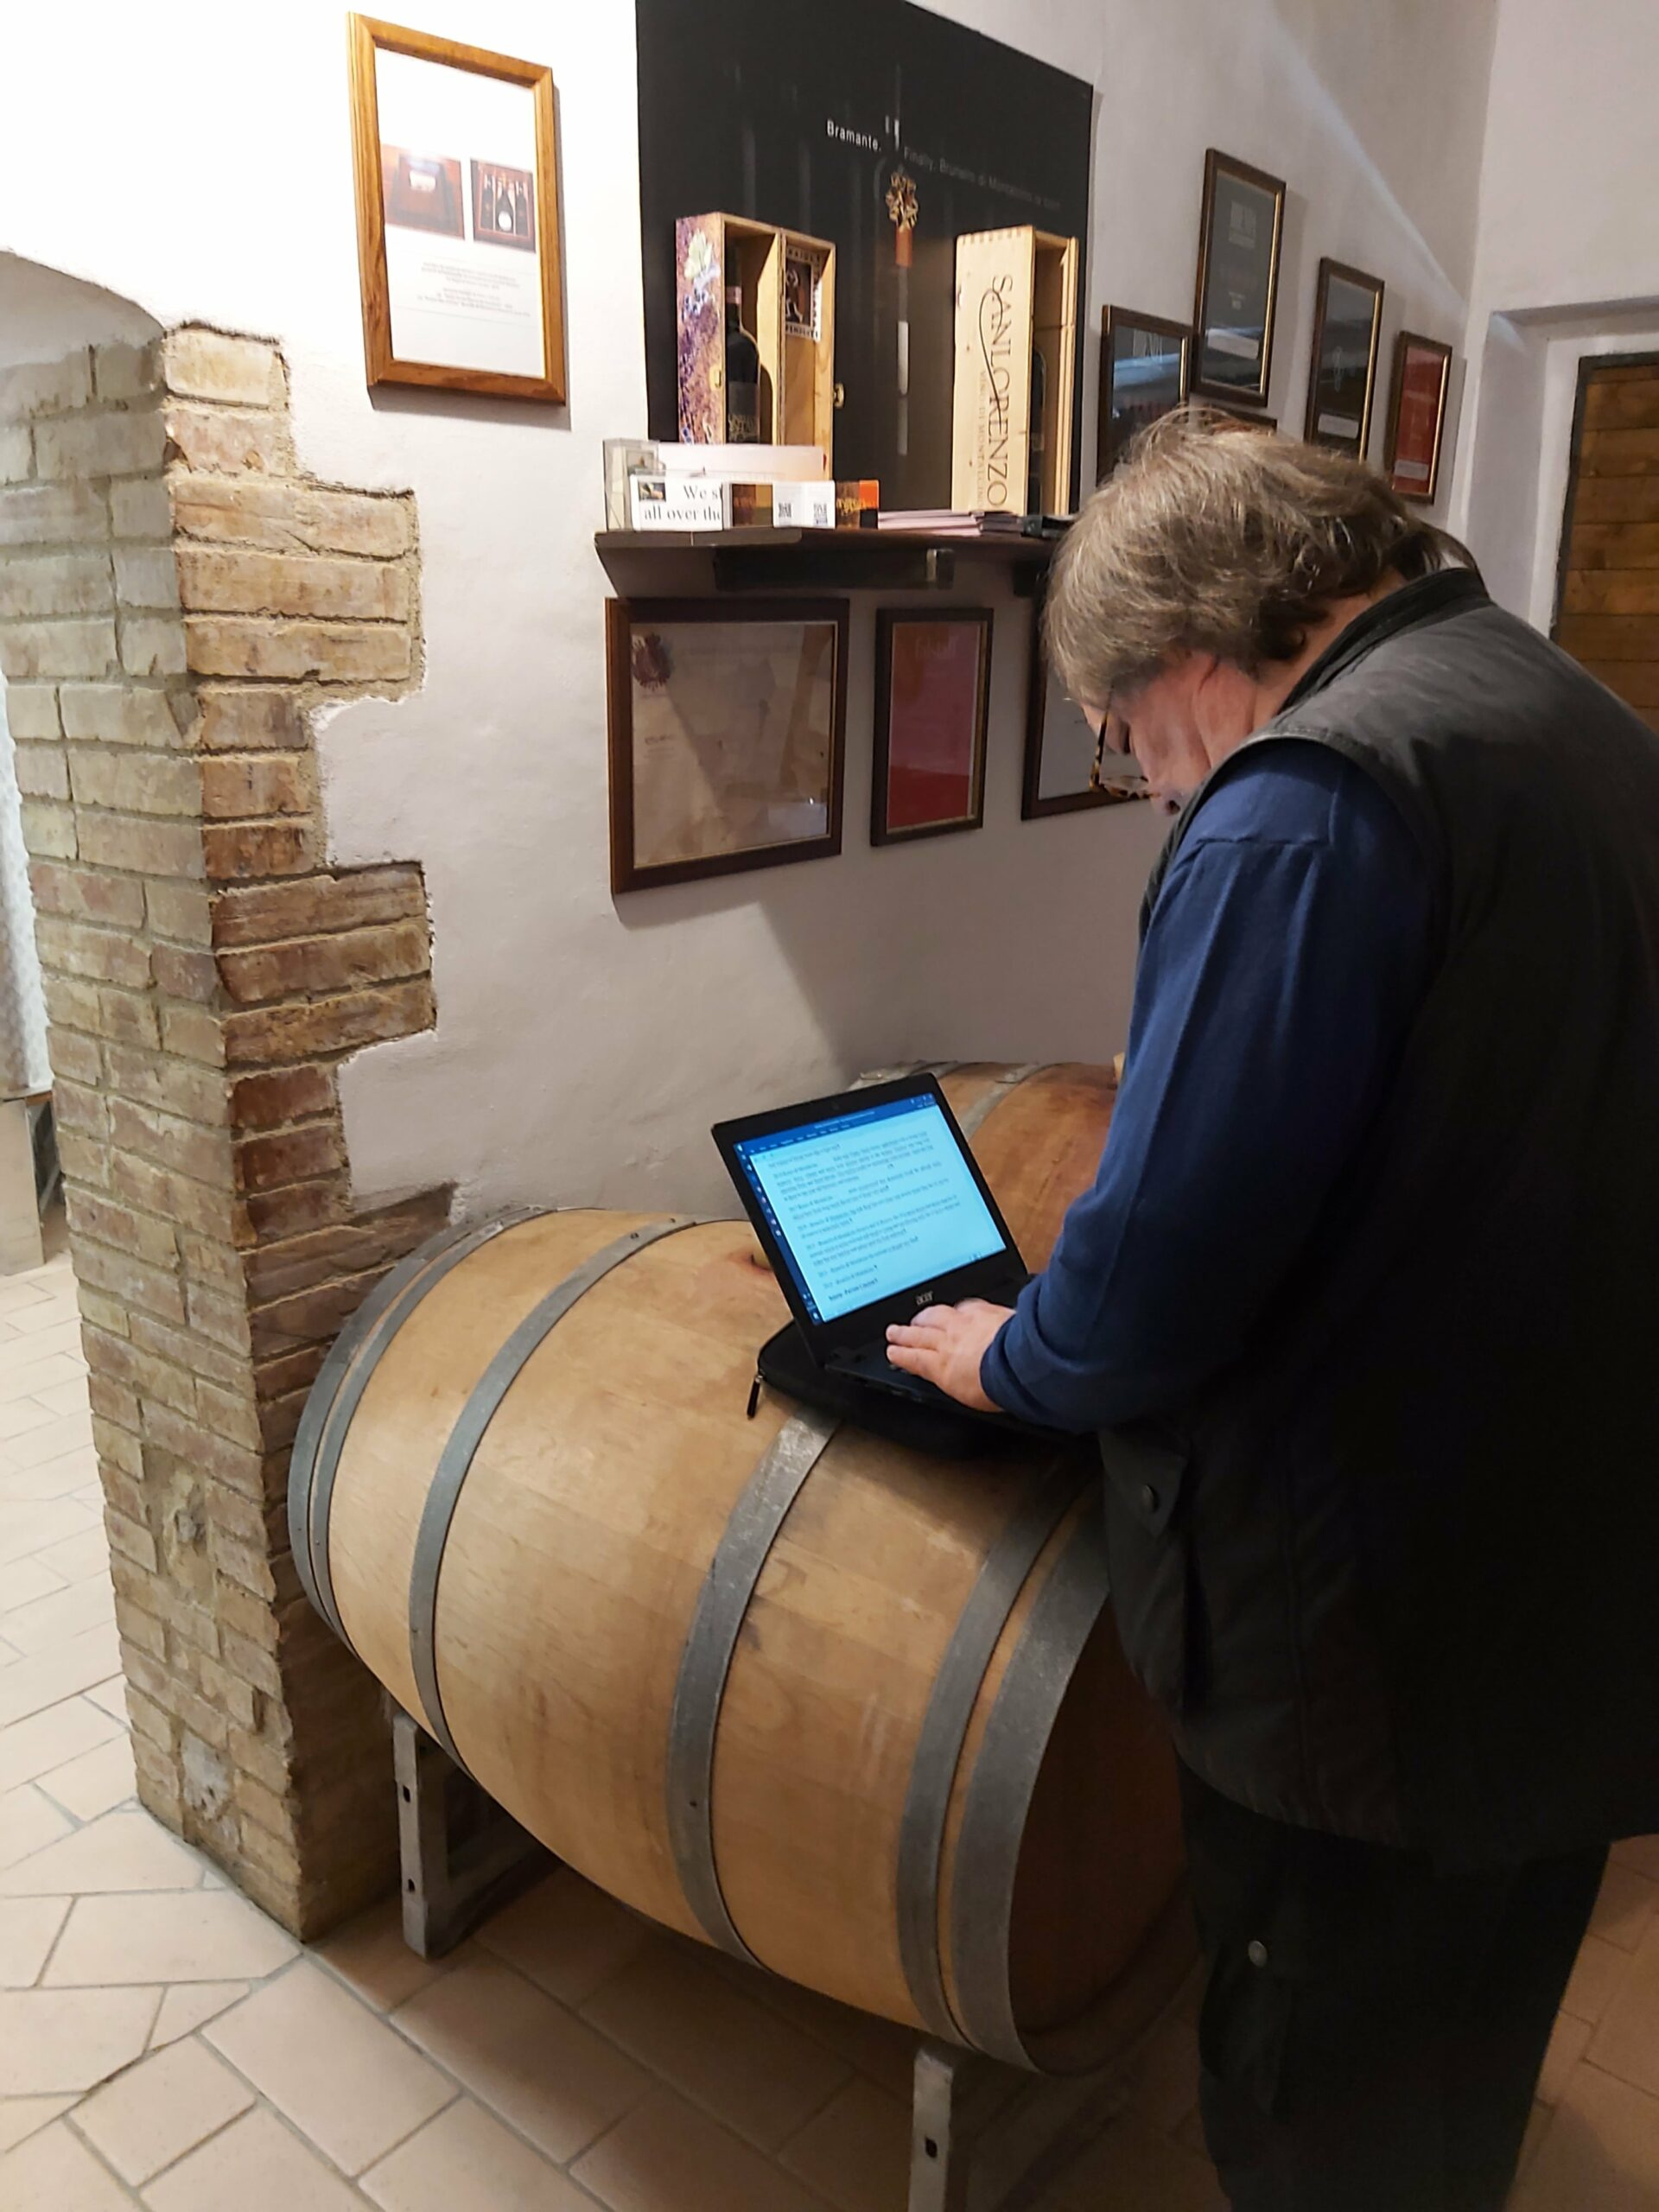 What-the-poor-wine-writer-has-to-go-through-just-to-get-his-job-done..Ian-wìtastinga-dn-writing-away-in-the-cellar-min-scaled-1-3-1